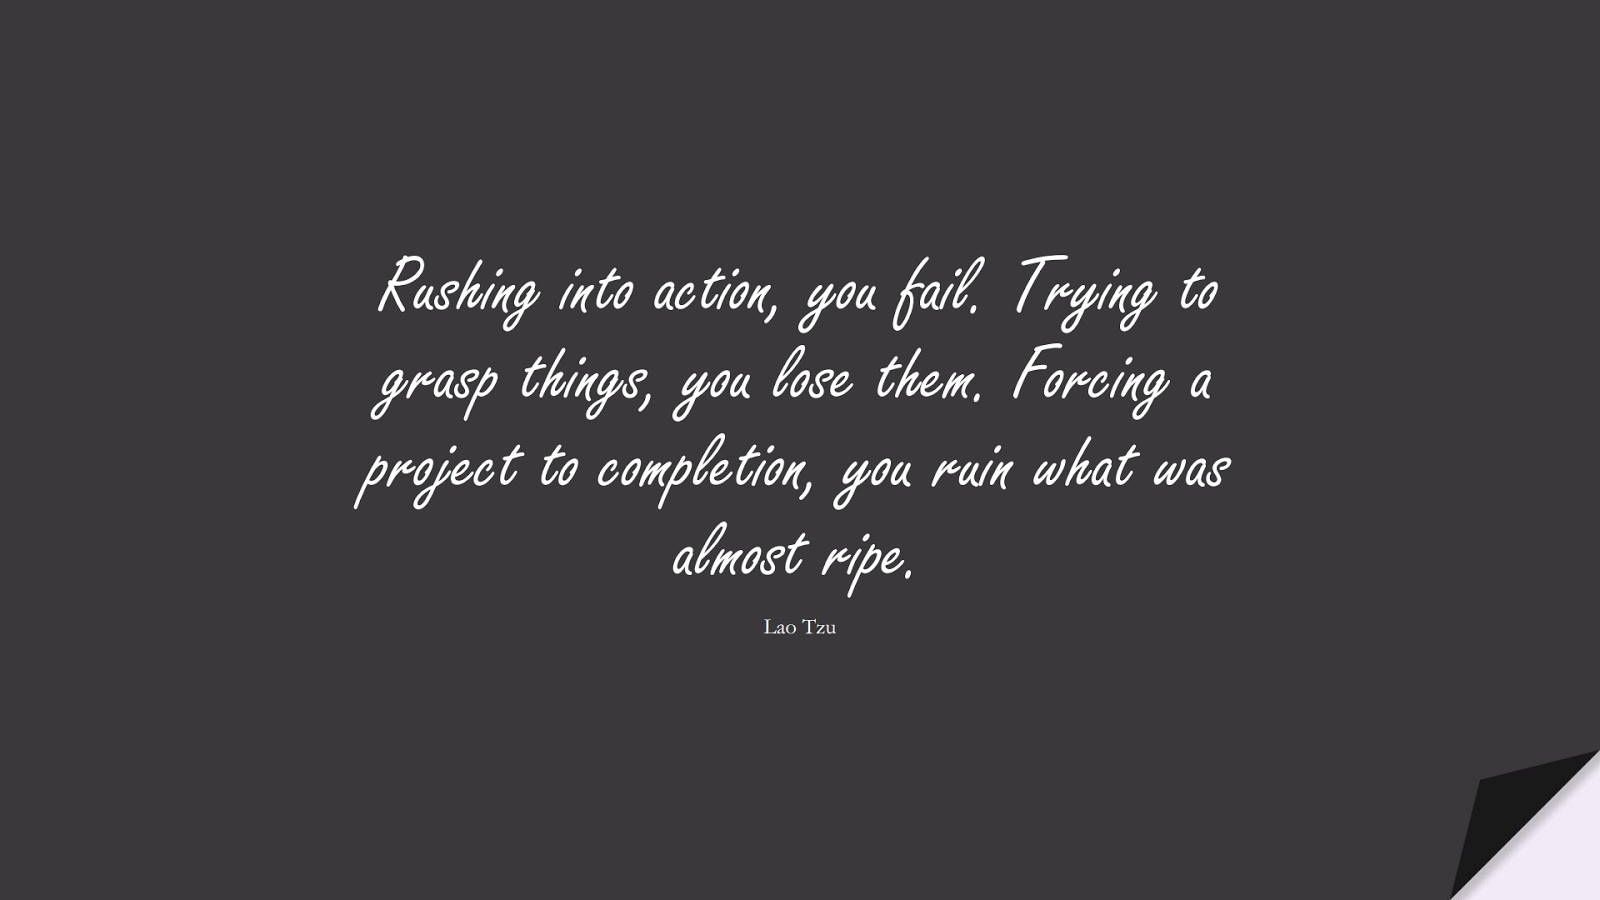 Rushing into action, you fail. Trying to grasp things, you lose them. Forcing a project to completion, you ruin what was almost ripe. (Lao Tzu);  #CalmQuotes